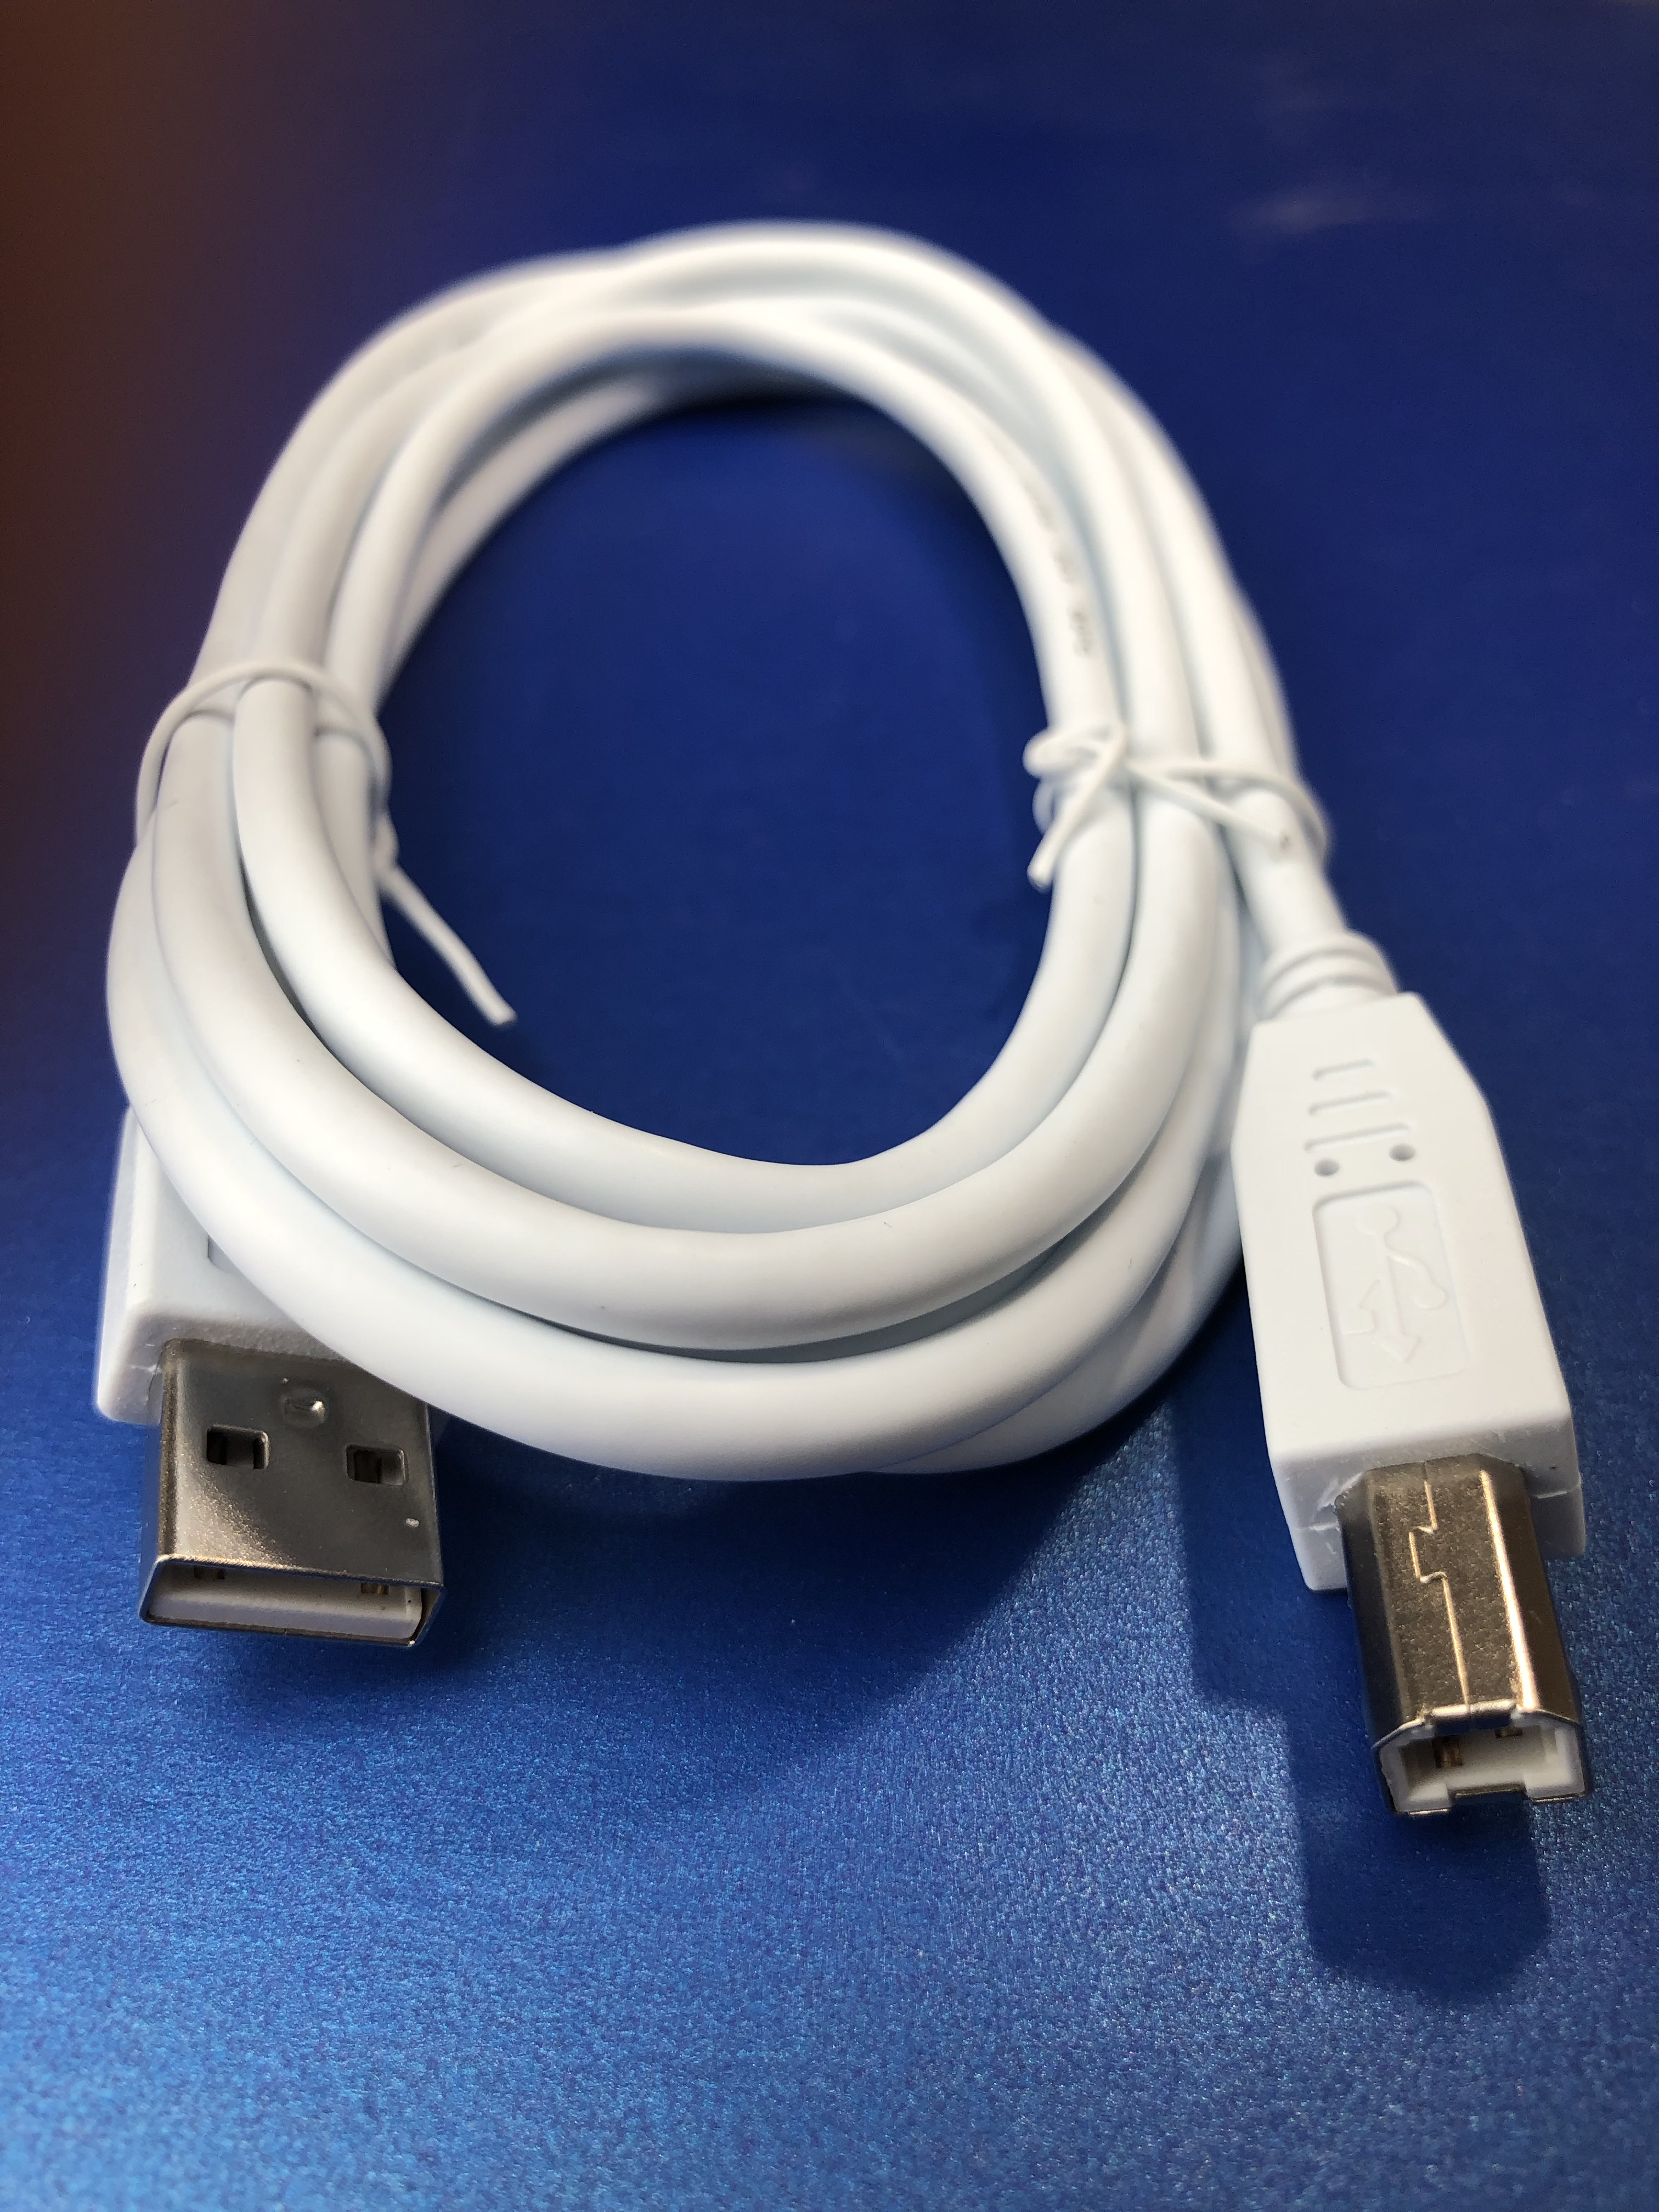 USB 2.0 A Male to B Male Lead, 2m